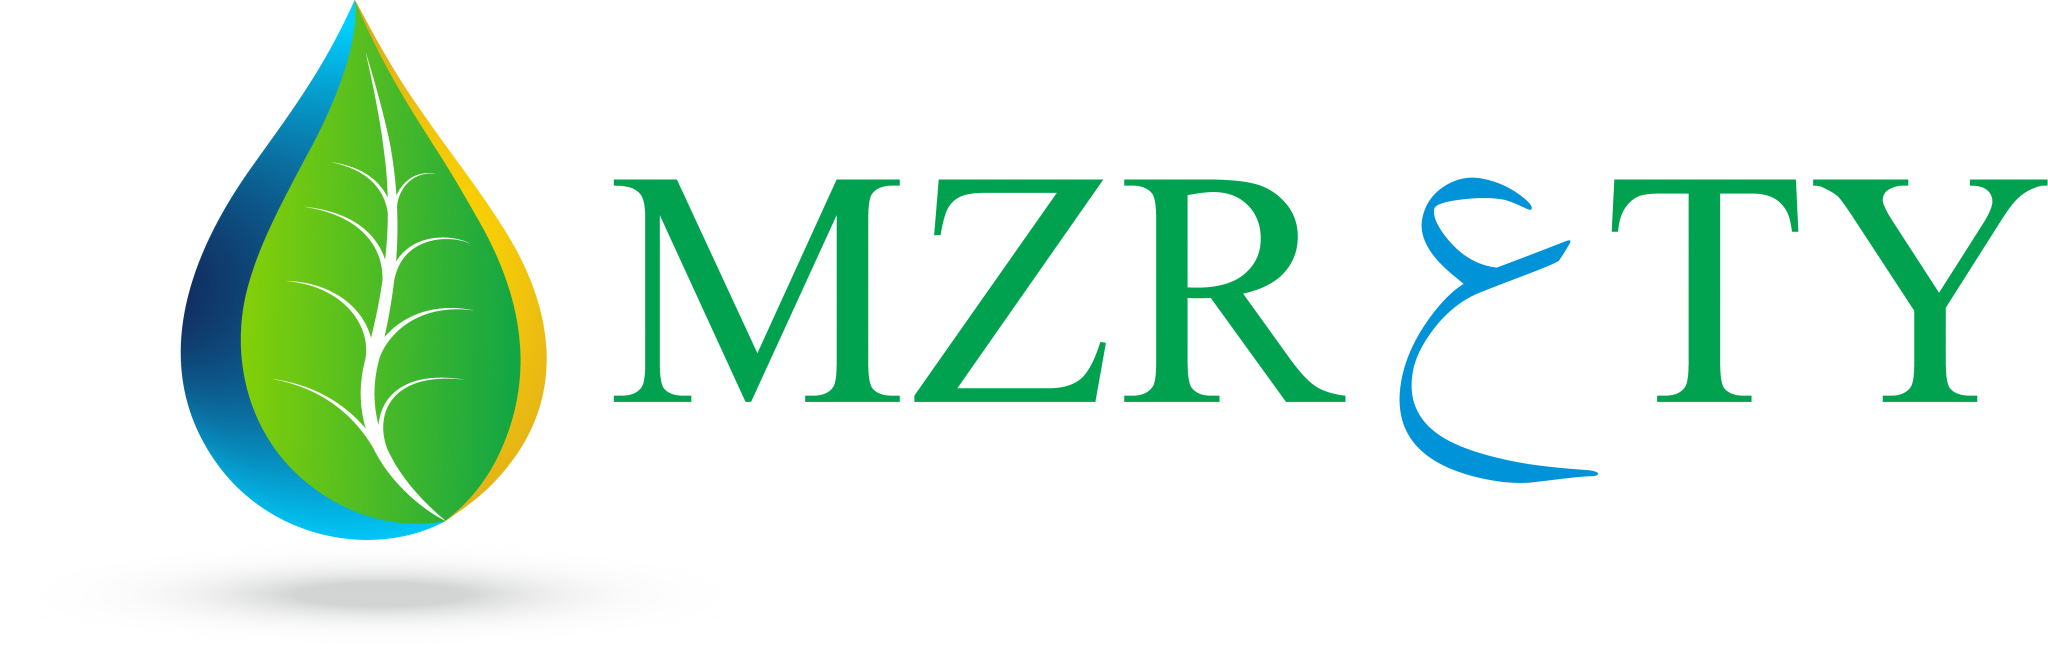 mzr3ty_final_website_logo